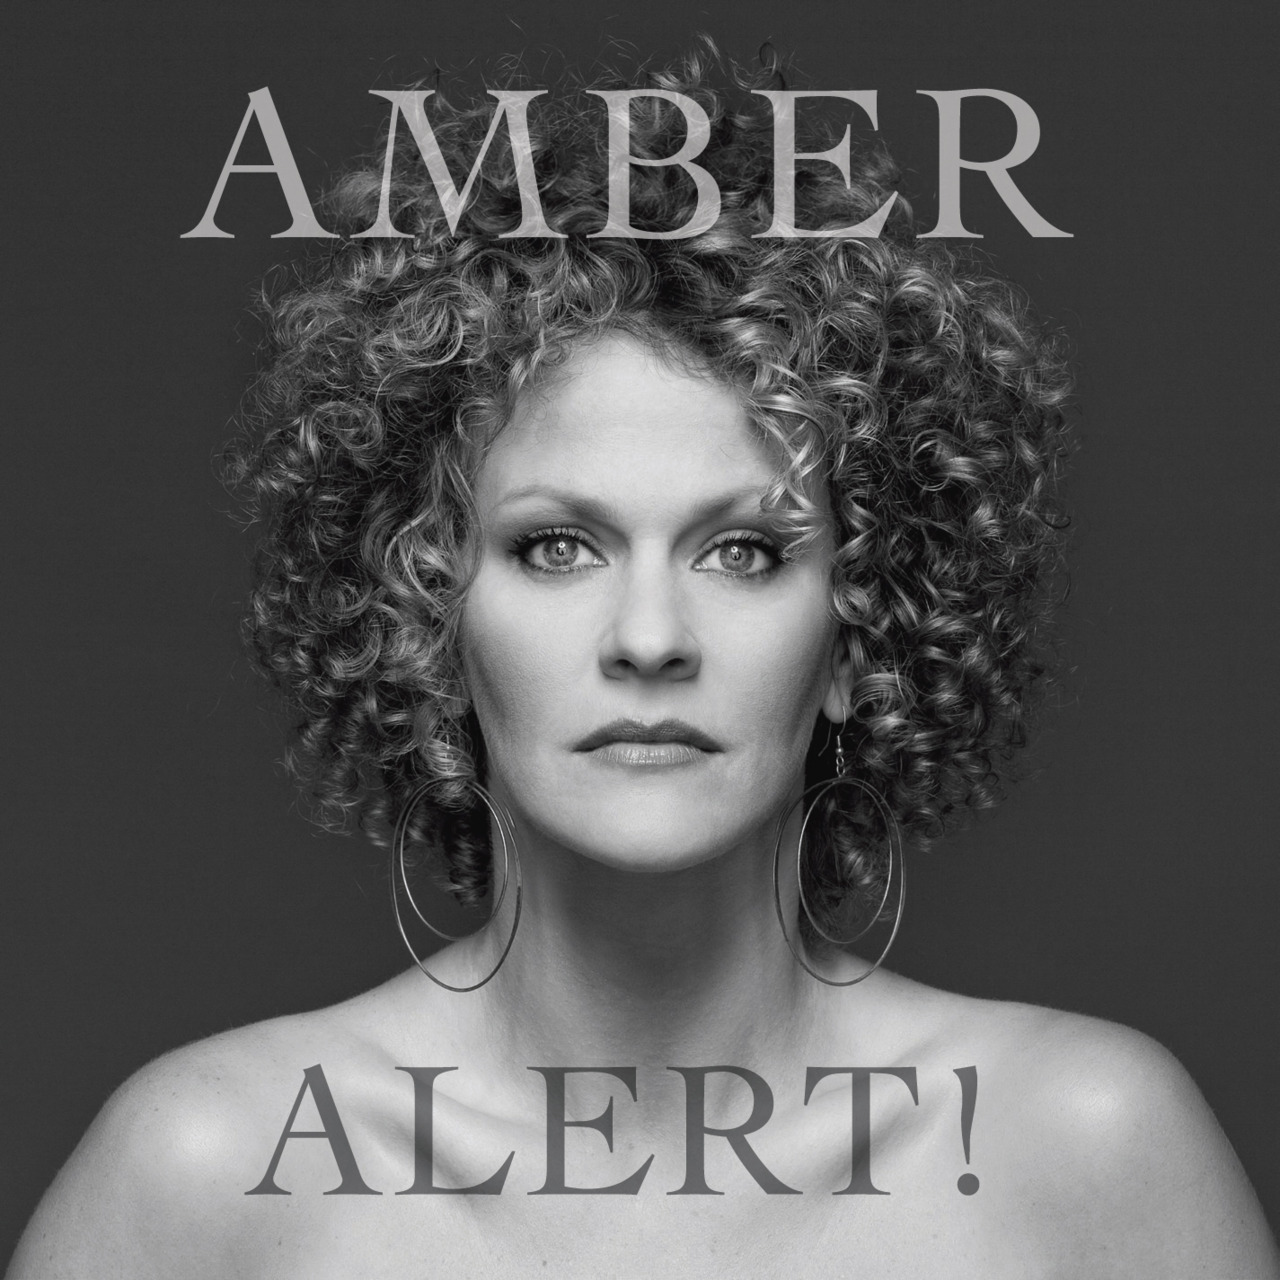 "•TRUST ME• Don't miss Amber Martin in Amber Alert! You will have 5 opportunities between now and May 28th! If you know me, you know I back this brilliant performer 110%! AMBER MARTIN and her toy box of characters in Amber Alert!   WITH SPECIAL GUESTS CYRUS BATY, KAREN BLACK, DREW BRODY, NATH ANN CARRERA, ANGELA DI CARLO, CATHY CERVENKA, ADAM DUGAS, COLE ESCOLA, BRIDGET EVERETT, JAMES KALIARDOS, ERIN MARKEY, CHERYL MARTIN, JILL PANGALLO, LADY RIZO & CASEY SPOONER       March 31st, April 1st & 2nd at 9:00PM   The Wild Project  195 East 3rd Street New York City  & MAY 21ST  & MAY 28TH  AT 7:00PM JOE'S PUB 425 LAFAYETTE STREET NEW YORK CITY ""The big, moving Bessie Smith-like sound of the chill-inducing Texas-born singer and actress wa s one of the gifts served up this season"" Hilton Als' Best Performers of 2010 The New Yorker  For Tickets Please Visit:  www .thewildproject.com www .Amber-Martin.com Amber Martin photographed in New York City on October 17th 2010"